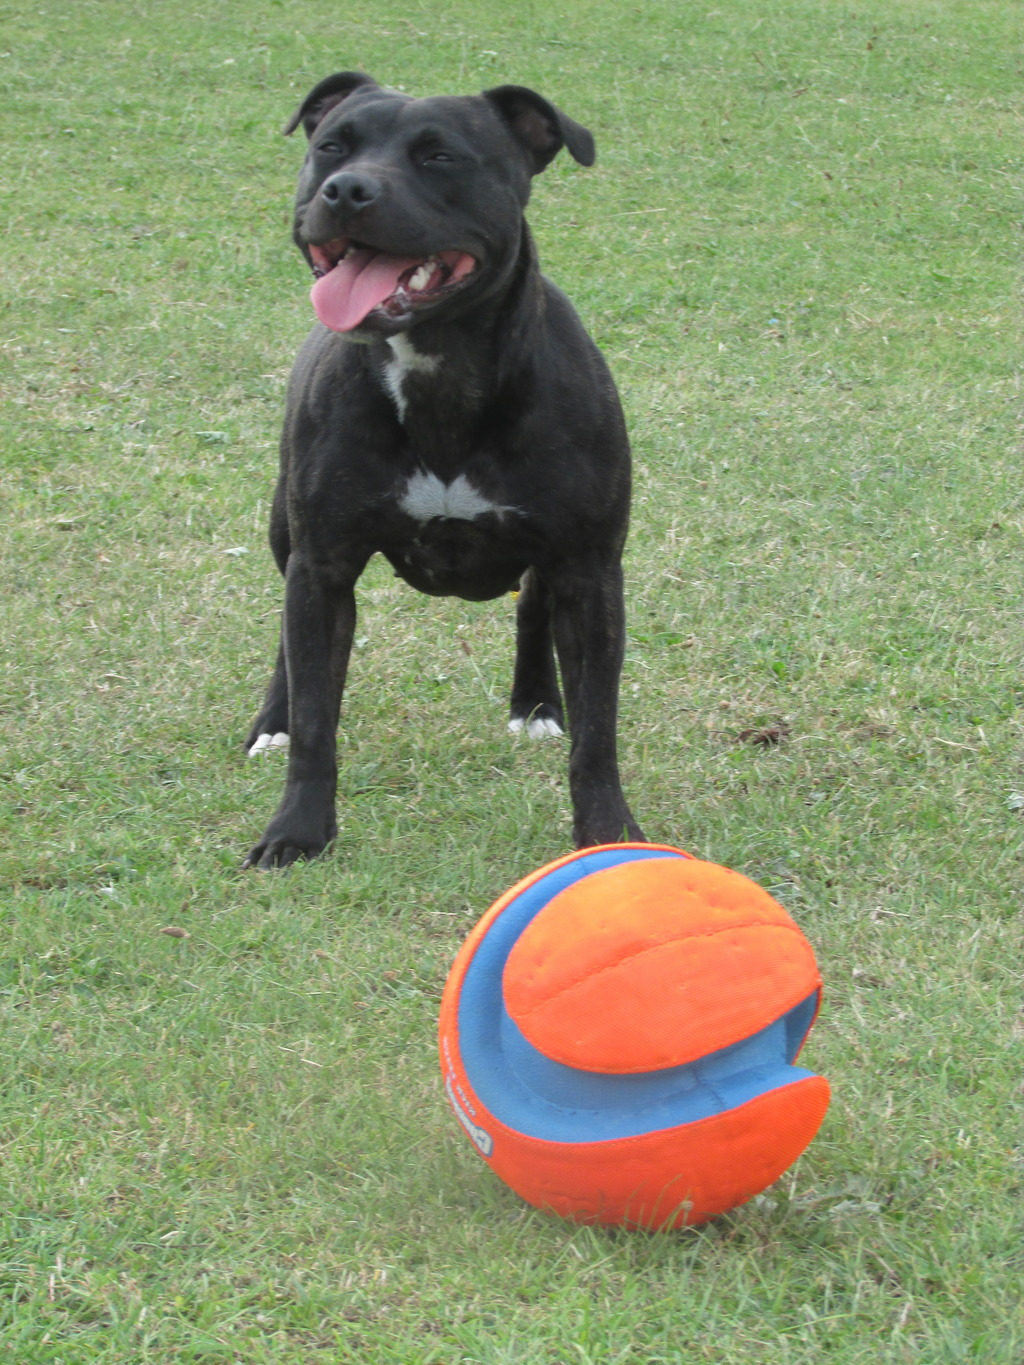 new ball :) play time!!! IMG_1125_zps0yvlin3t